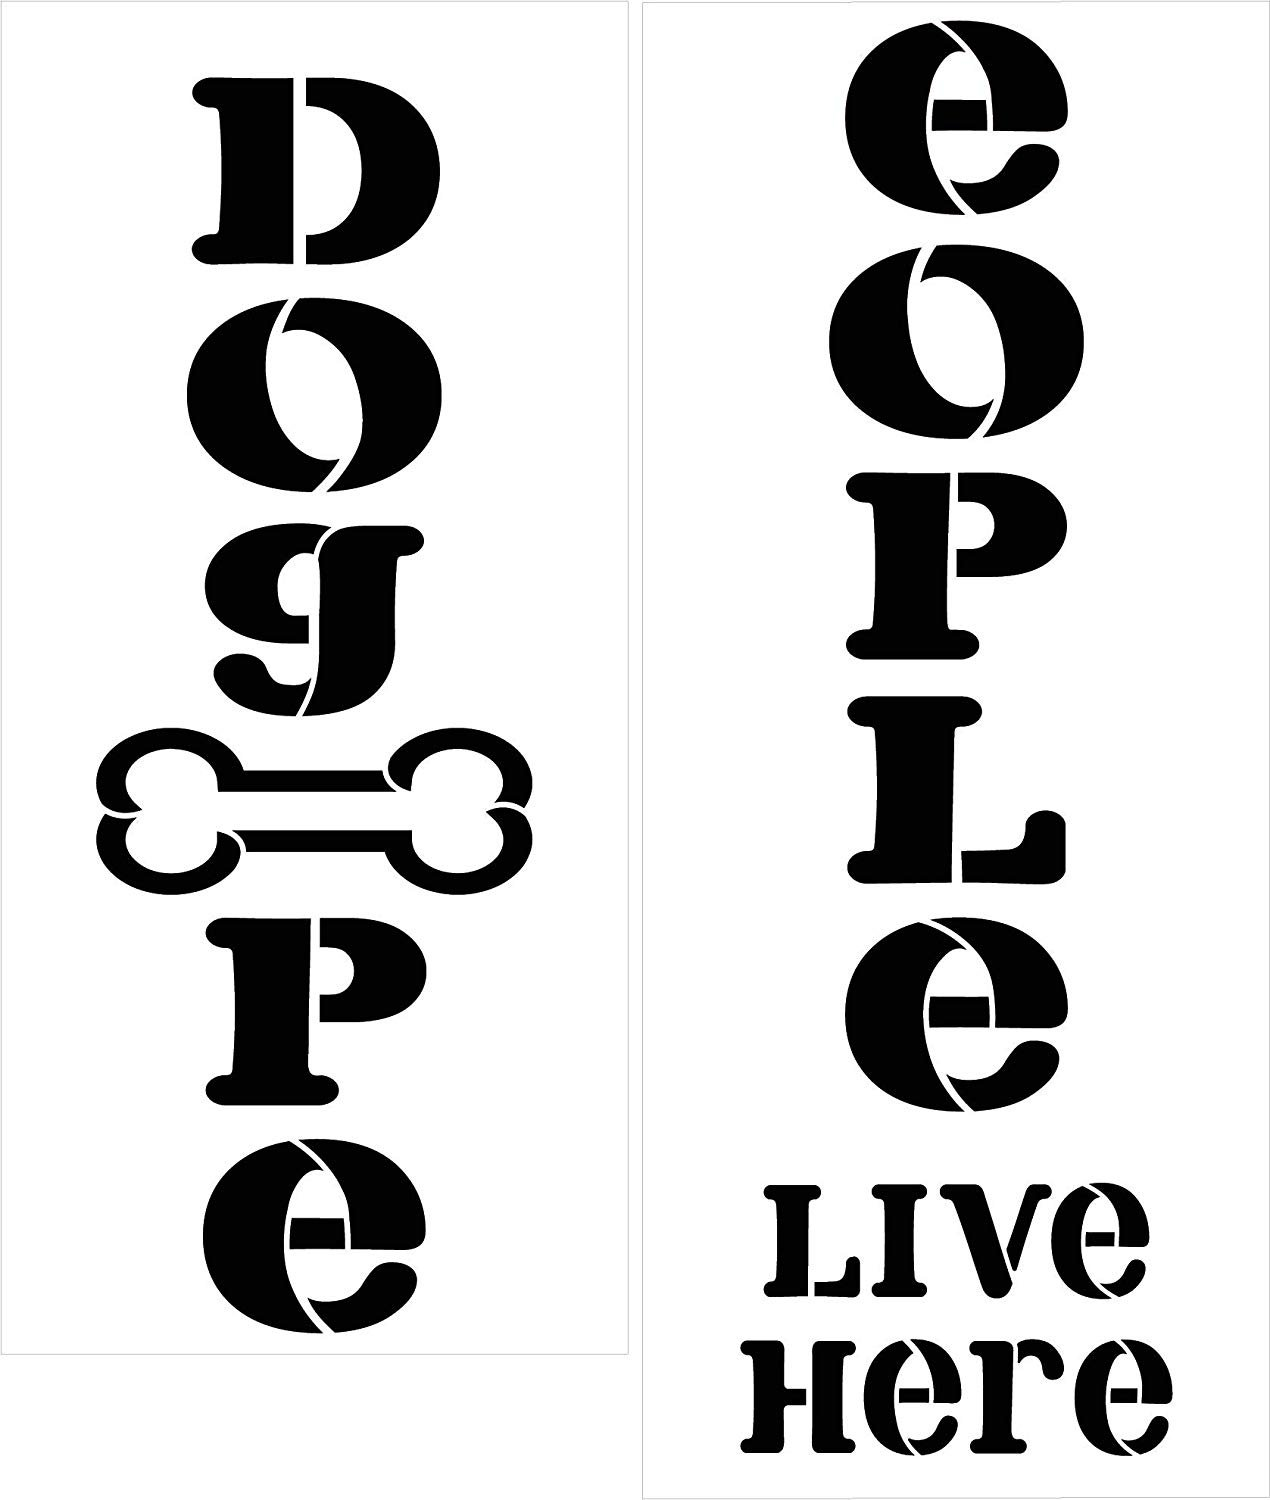 Dog People Live Here Tall Porch Stencil with Bone by StudioR12 | 2 Piece | DIY Large Vertical Animal Pet Lover Outdoor Home Decor | Craft & Paint Wood Leaner Signs | Reusable Mylar Template | Size 4ft